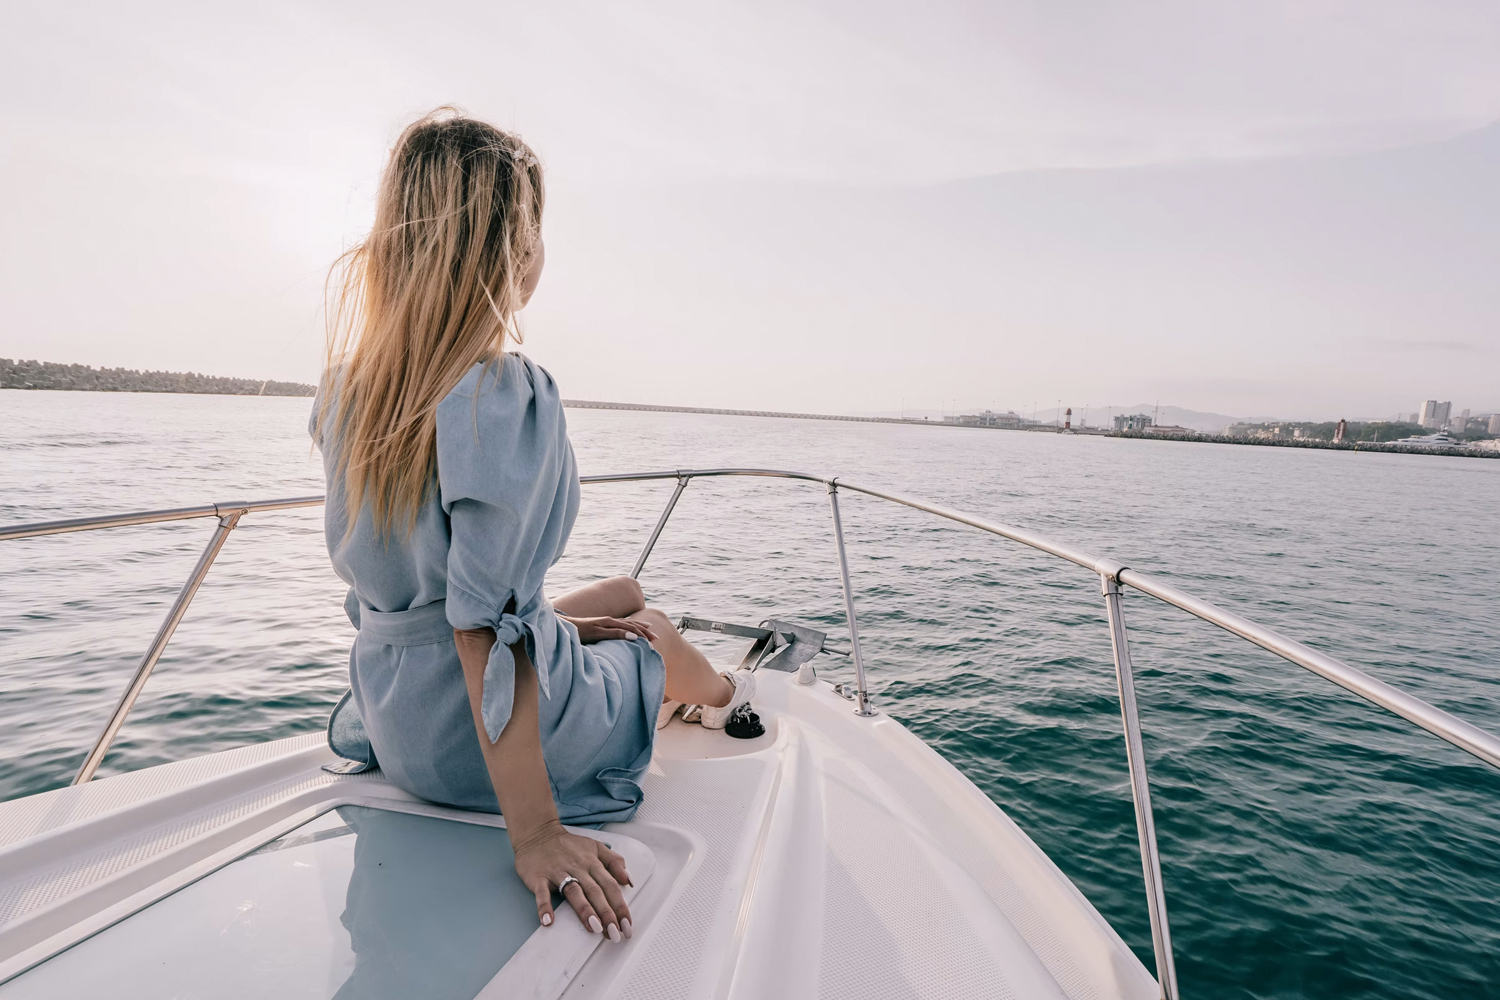 woman in a nautical outfit on a yacth